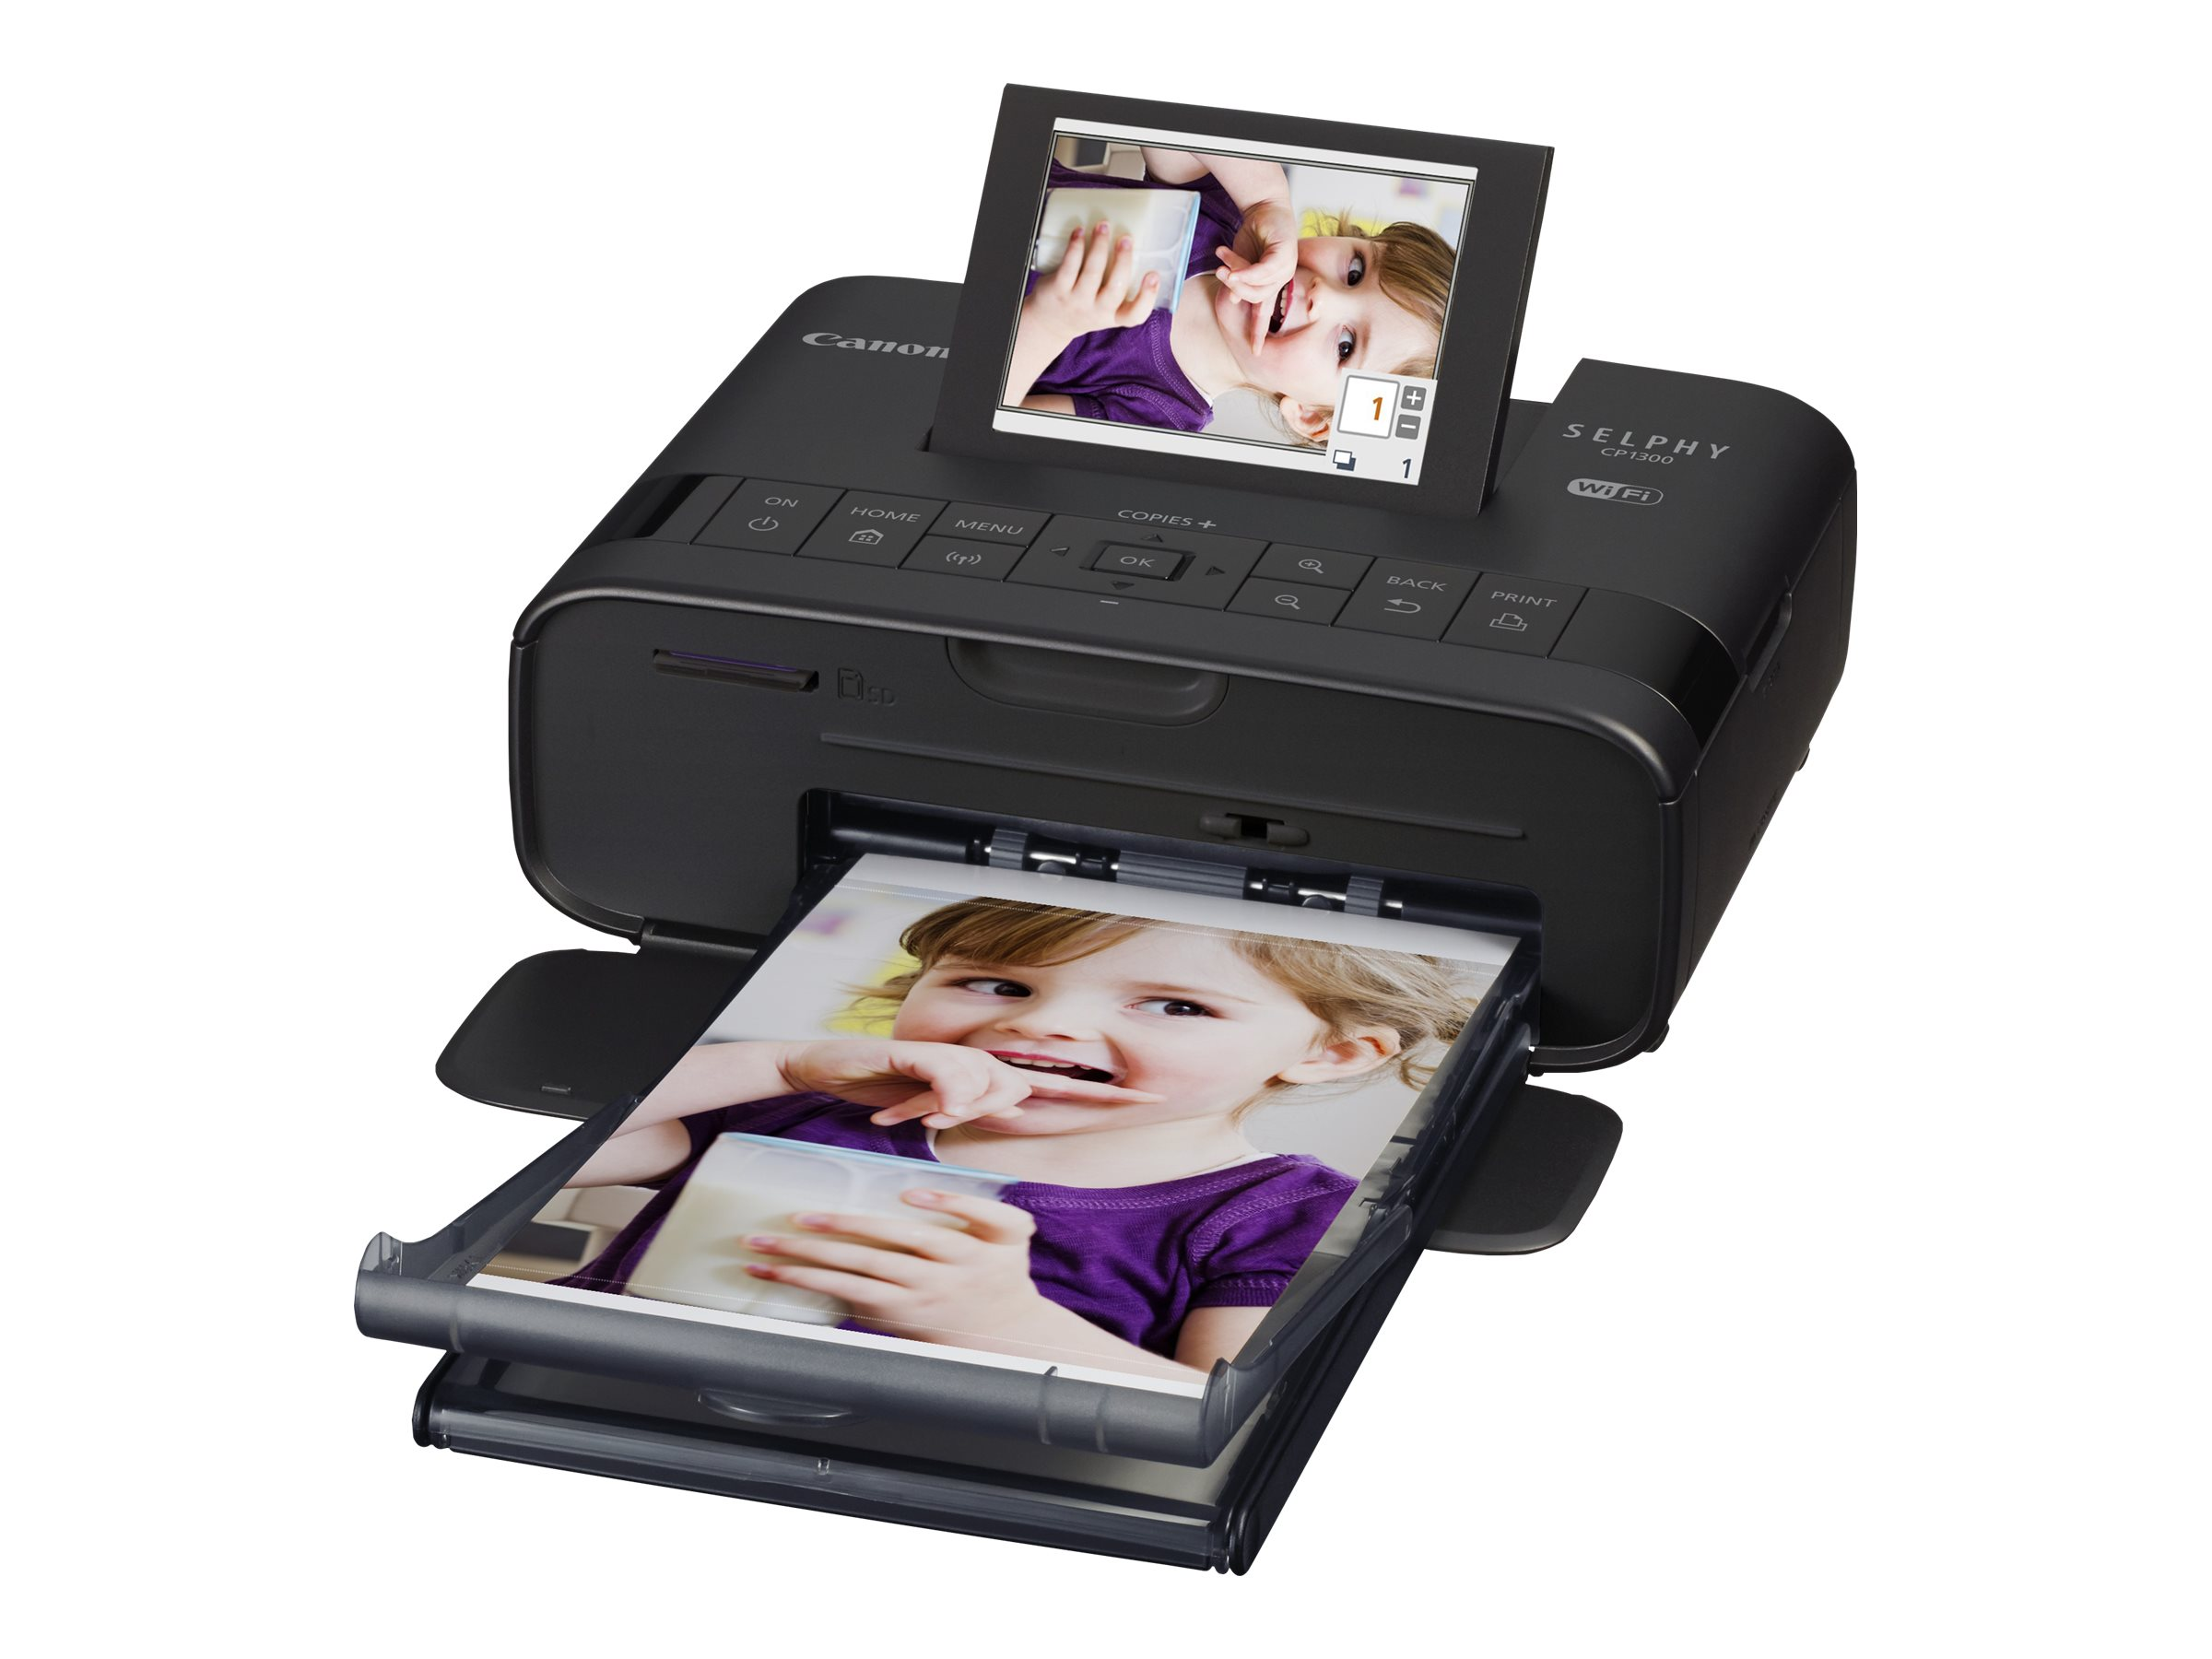 Canon SELPHY CP1300 - Drucker - Farbe - Thermosublimation - 148 x 100 mm bis zu 0.78 Min./Seite (Farbe) - USB, USB-Host, Wi-Fi